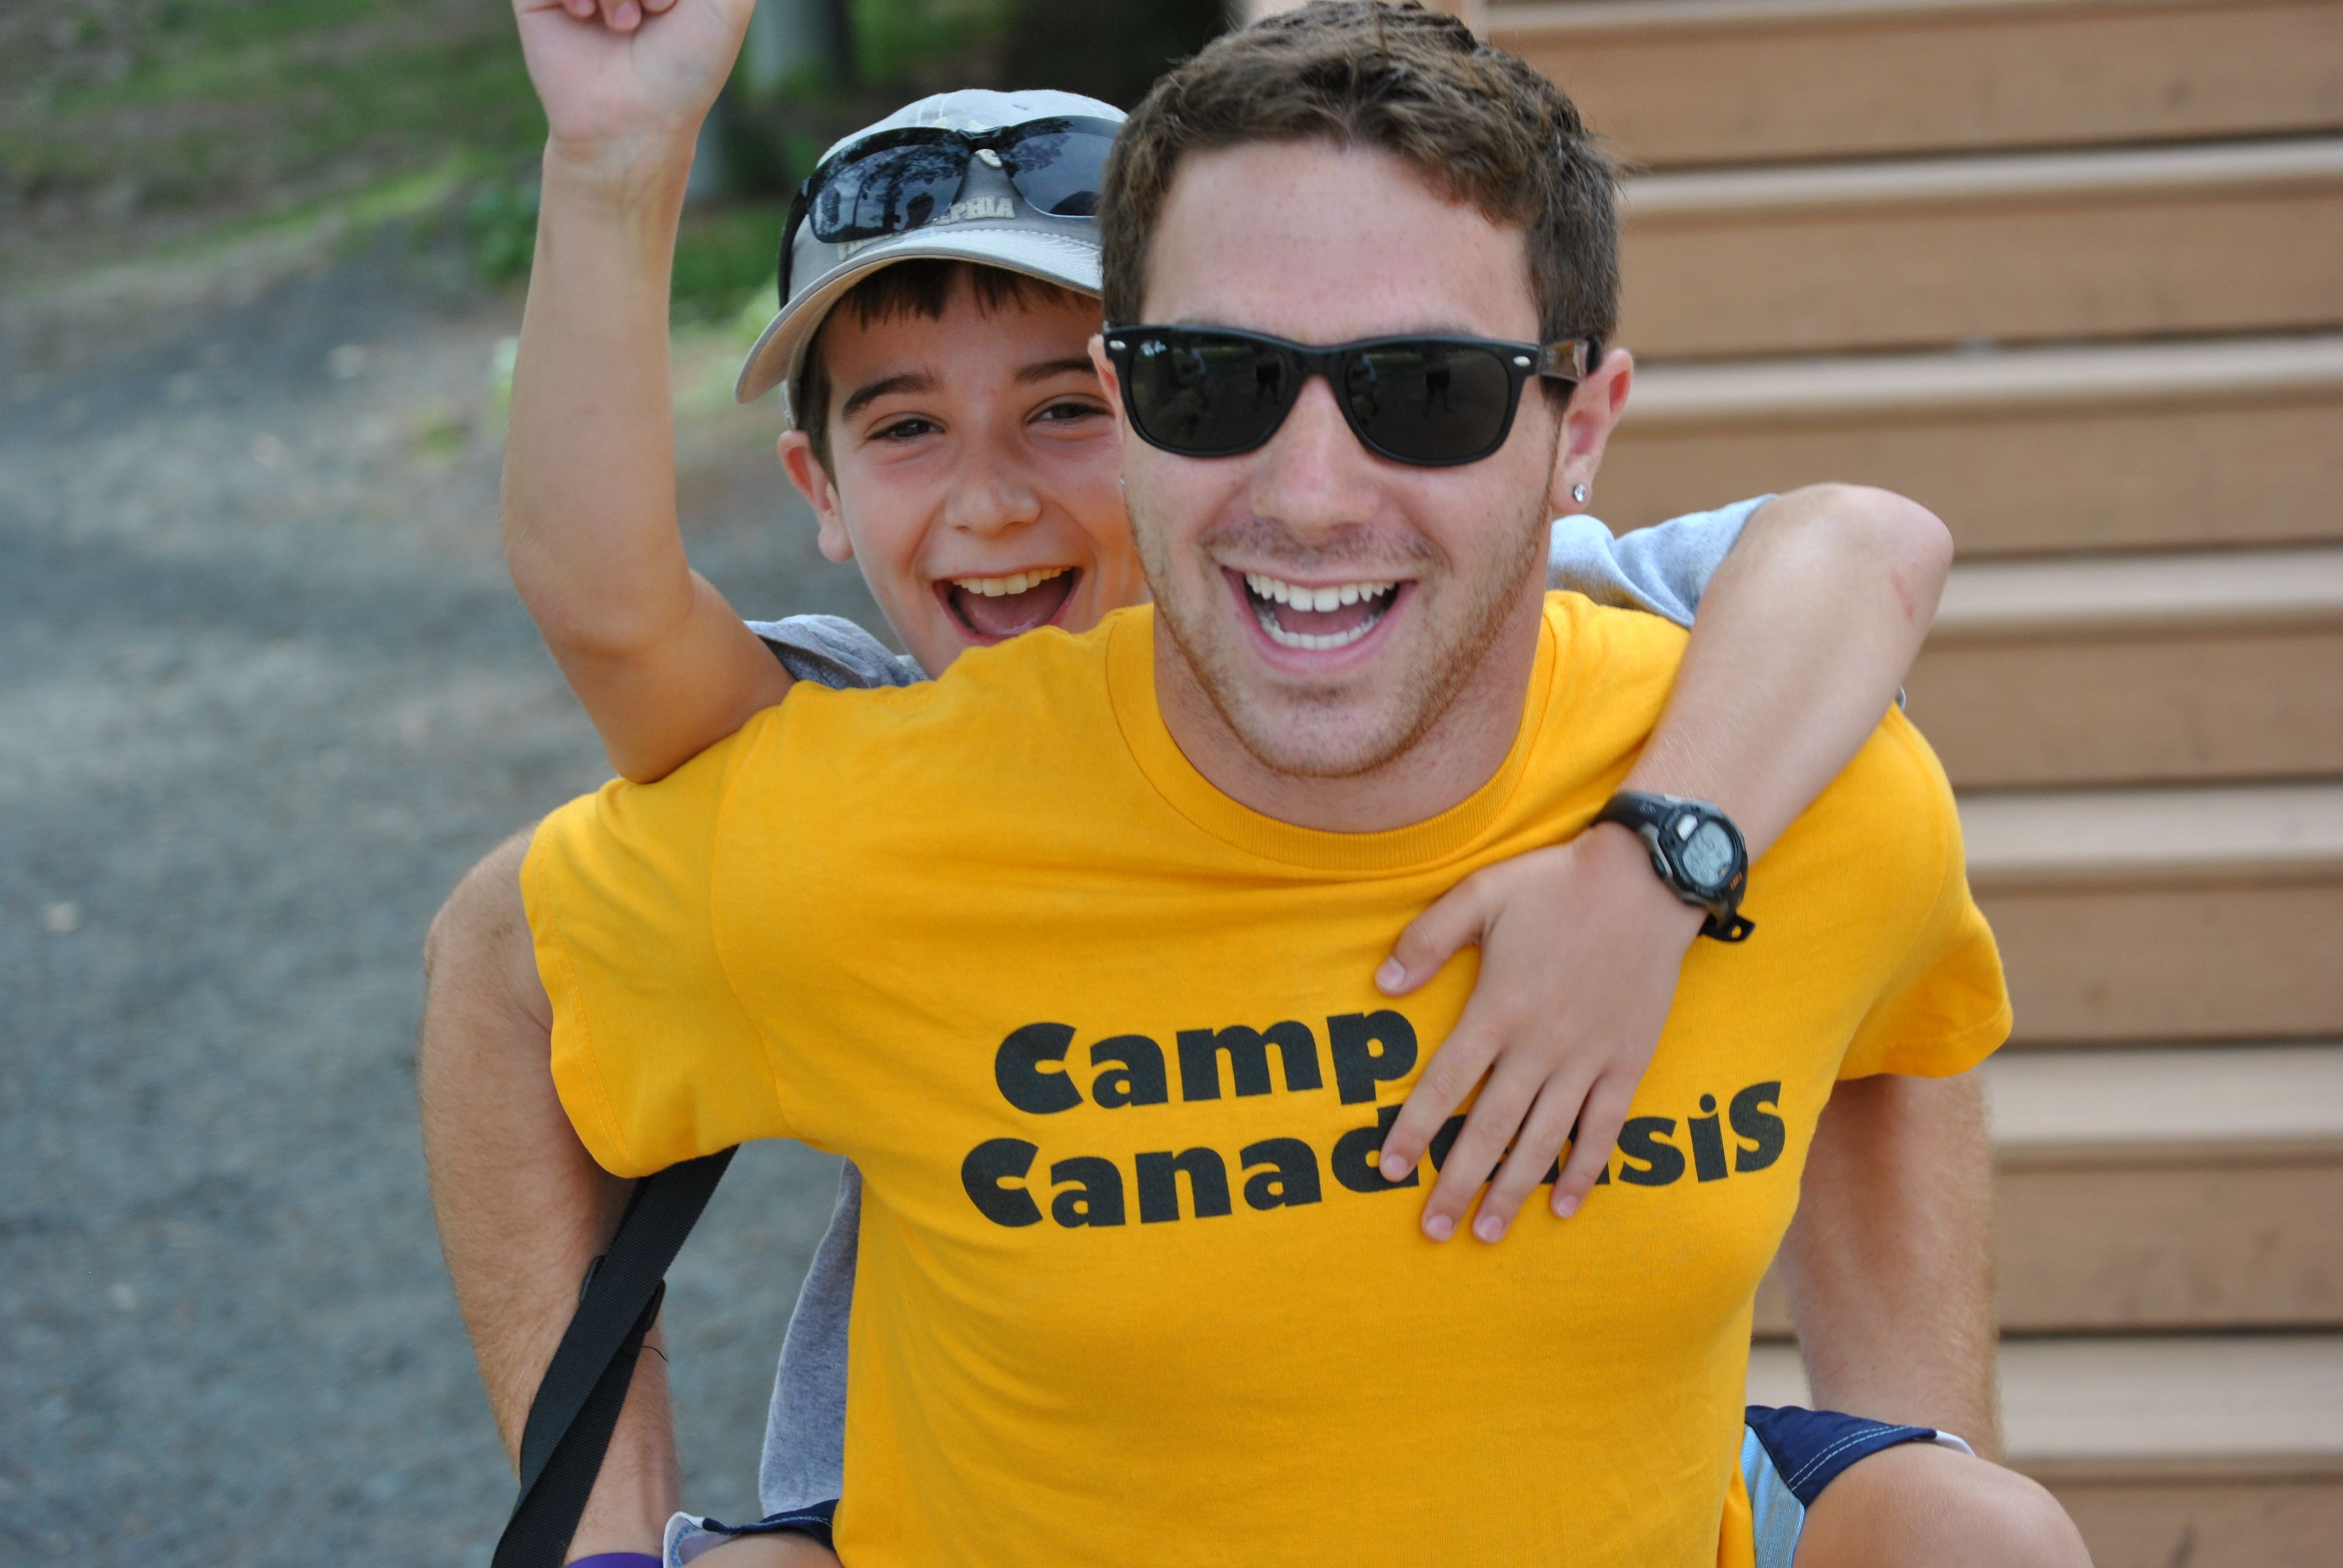 A great blog about a great Camp Canadensis staffer!